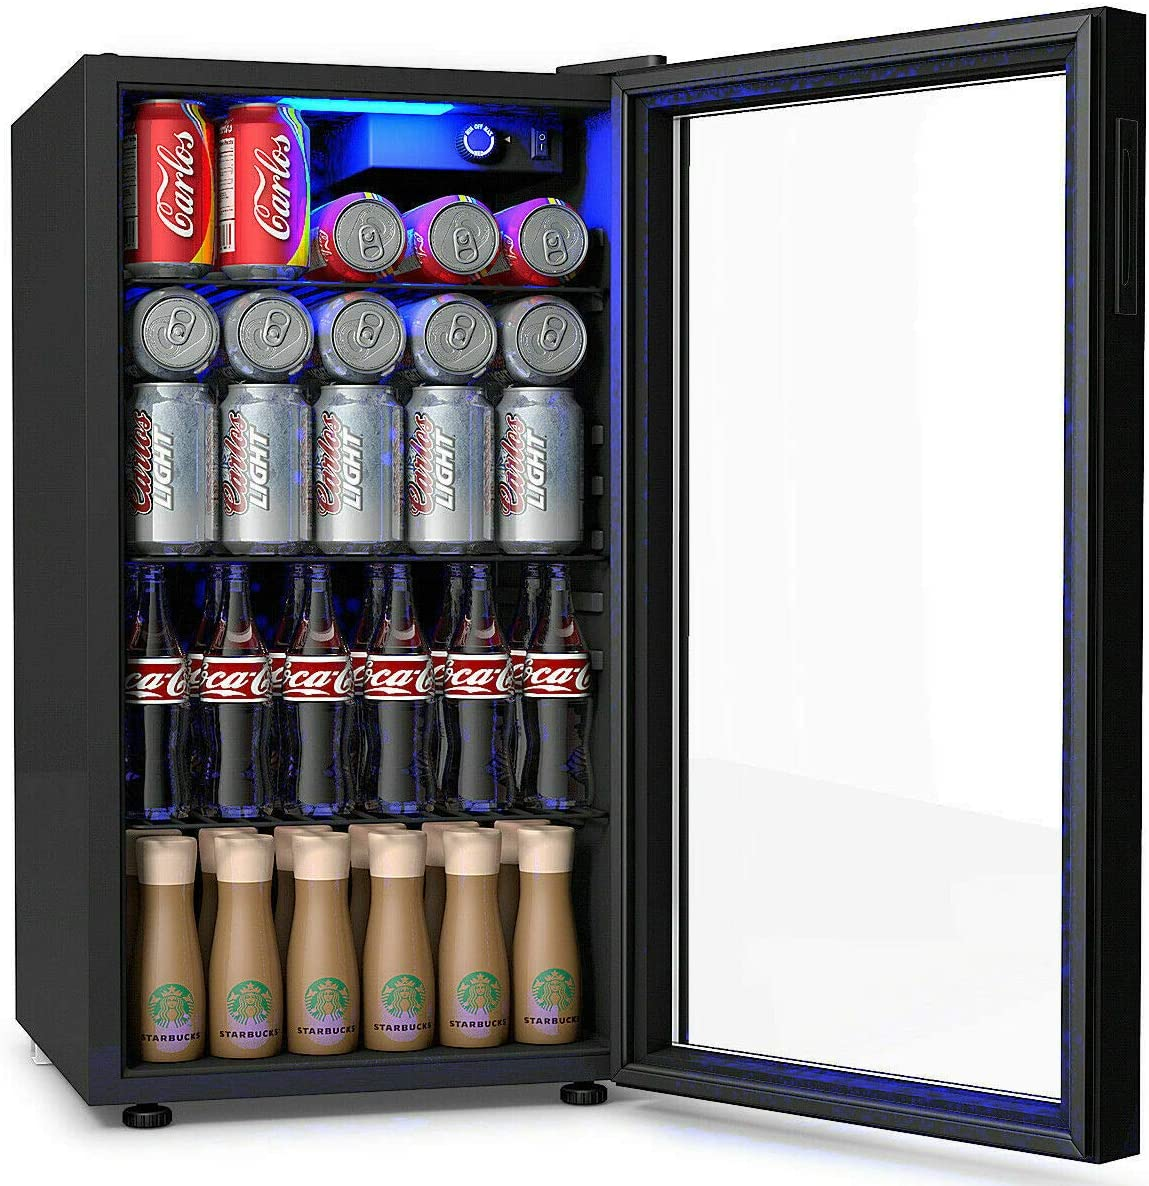 Amazon Com Costway Beverage Refrigerator 3 2 Cubic Foot Capacity 120 Can Beverage Cooler With Led Light Adjustable Thermostat Removable Shelves Perfect For Soda Beer Or Wine Small Drink Dispenser Machine Appliances